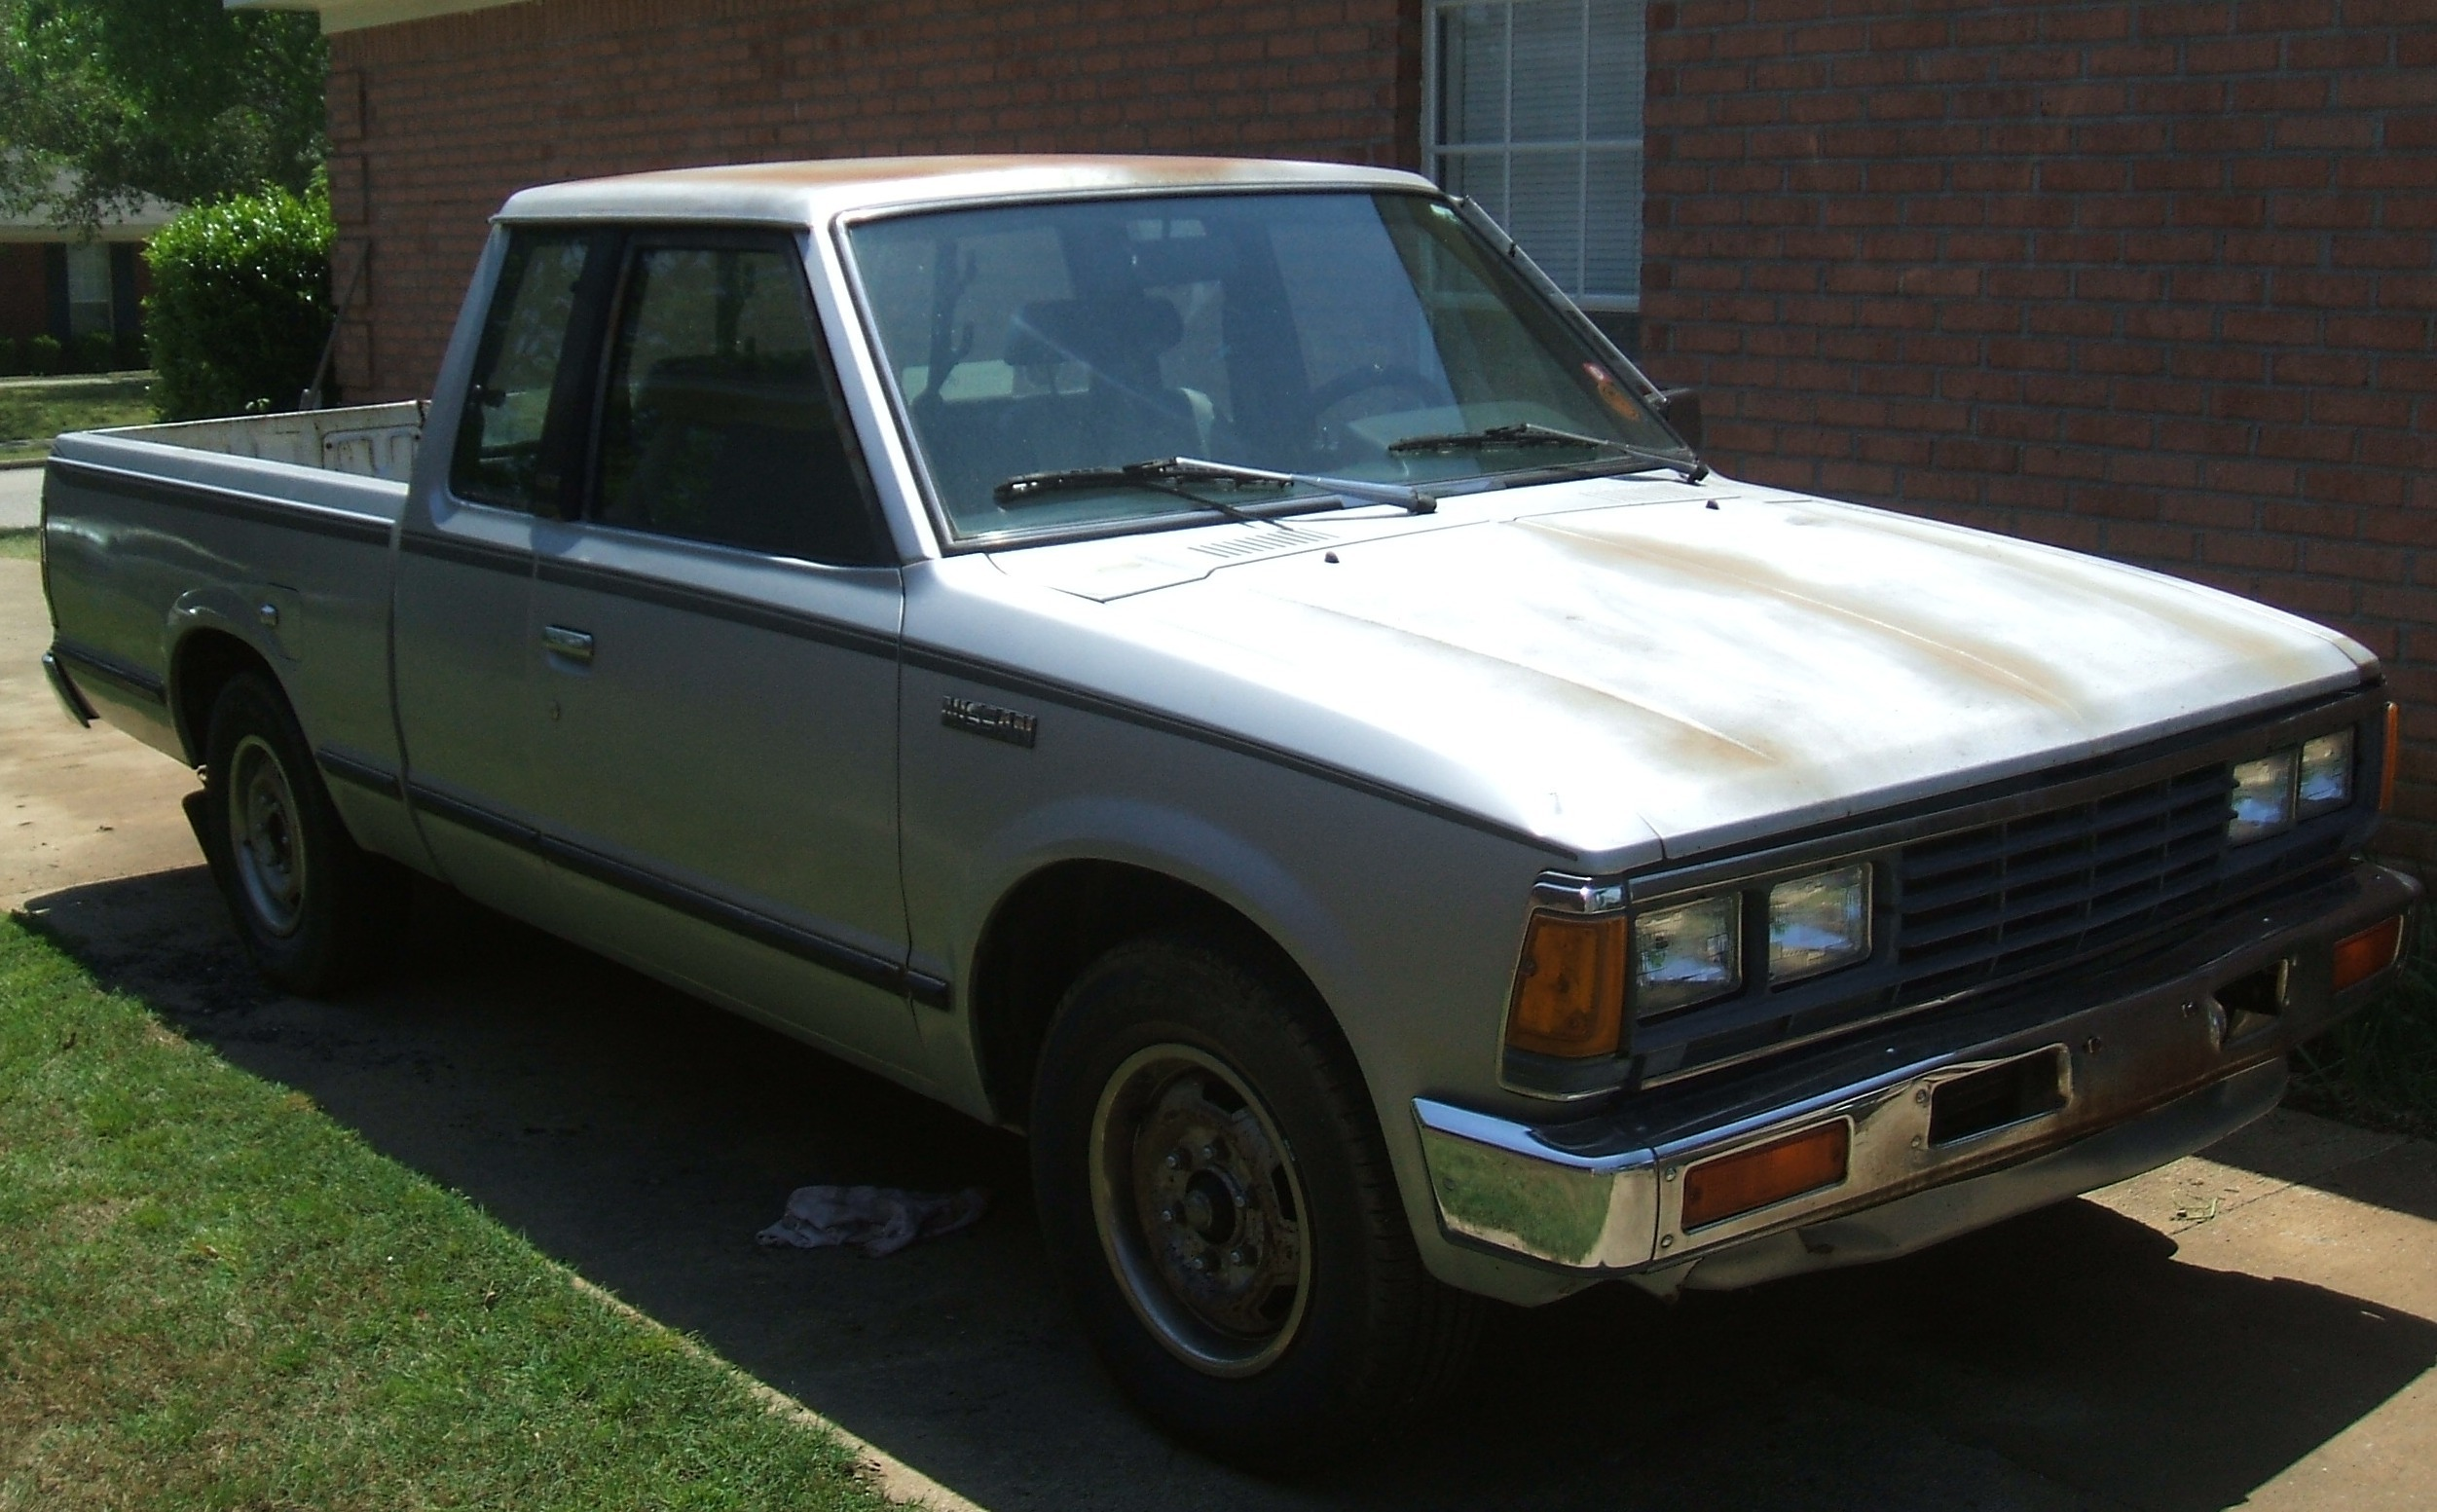 drvwycstm's 1985 Nissan 720 Pick-Up